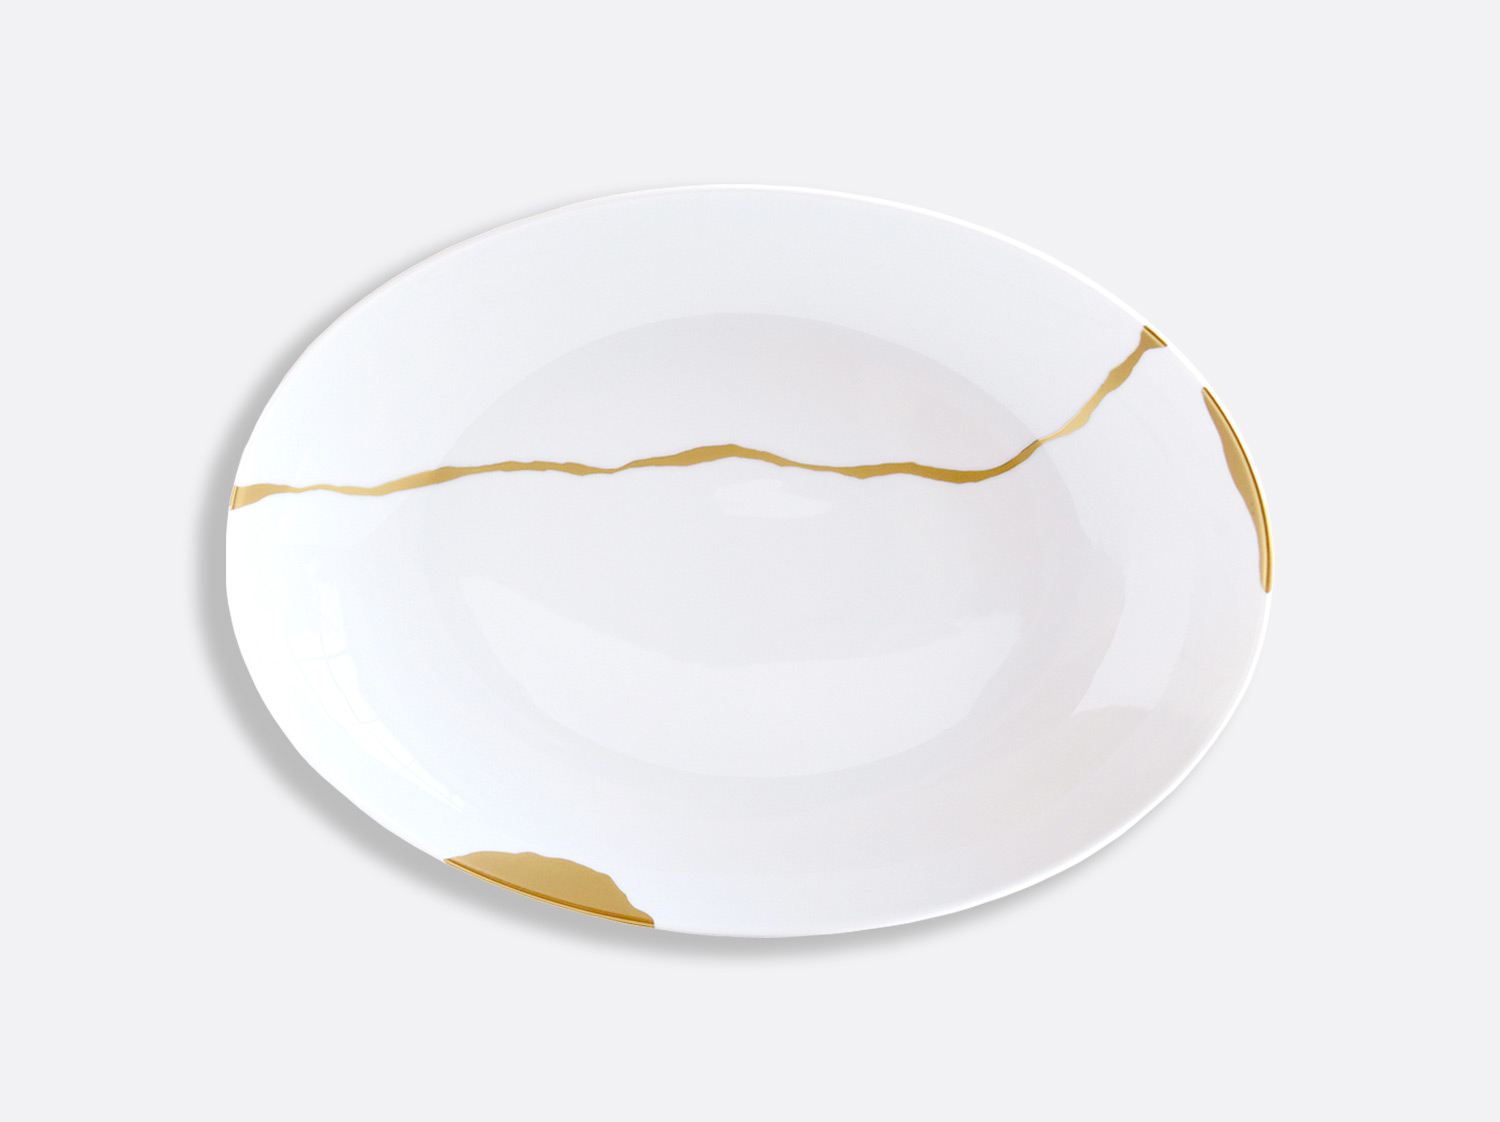 Plat ovale creux 39 x 28 cm en porcelaine de la collection Kintsugi Bernardaud